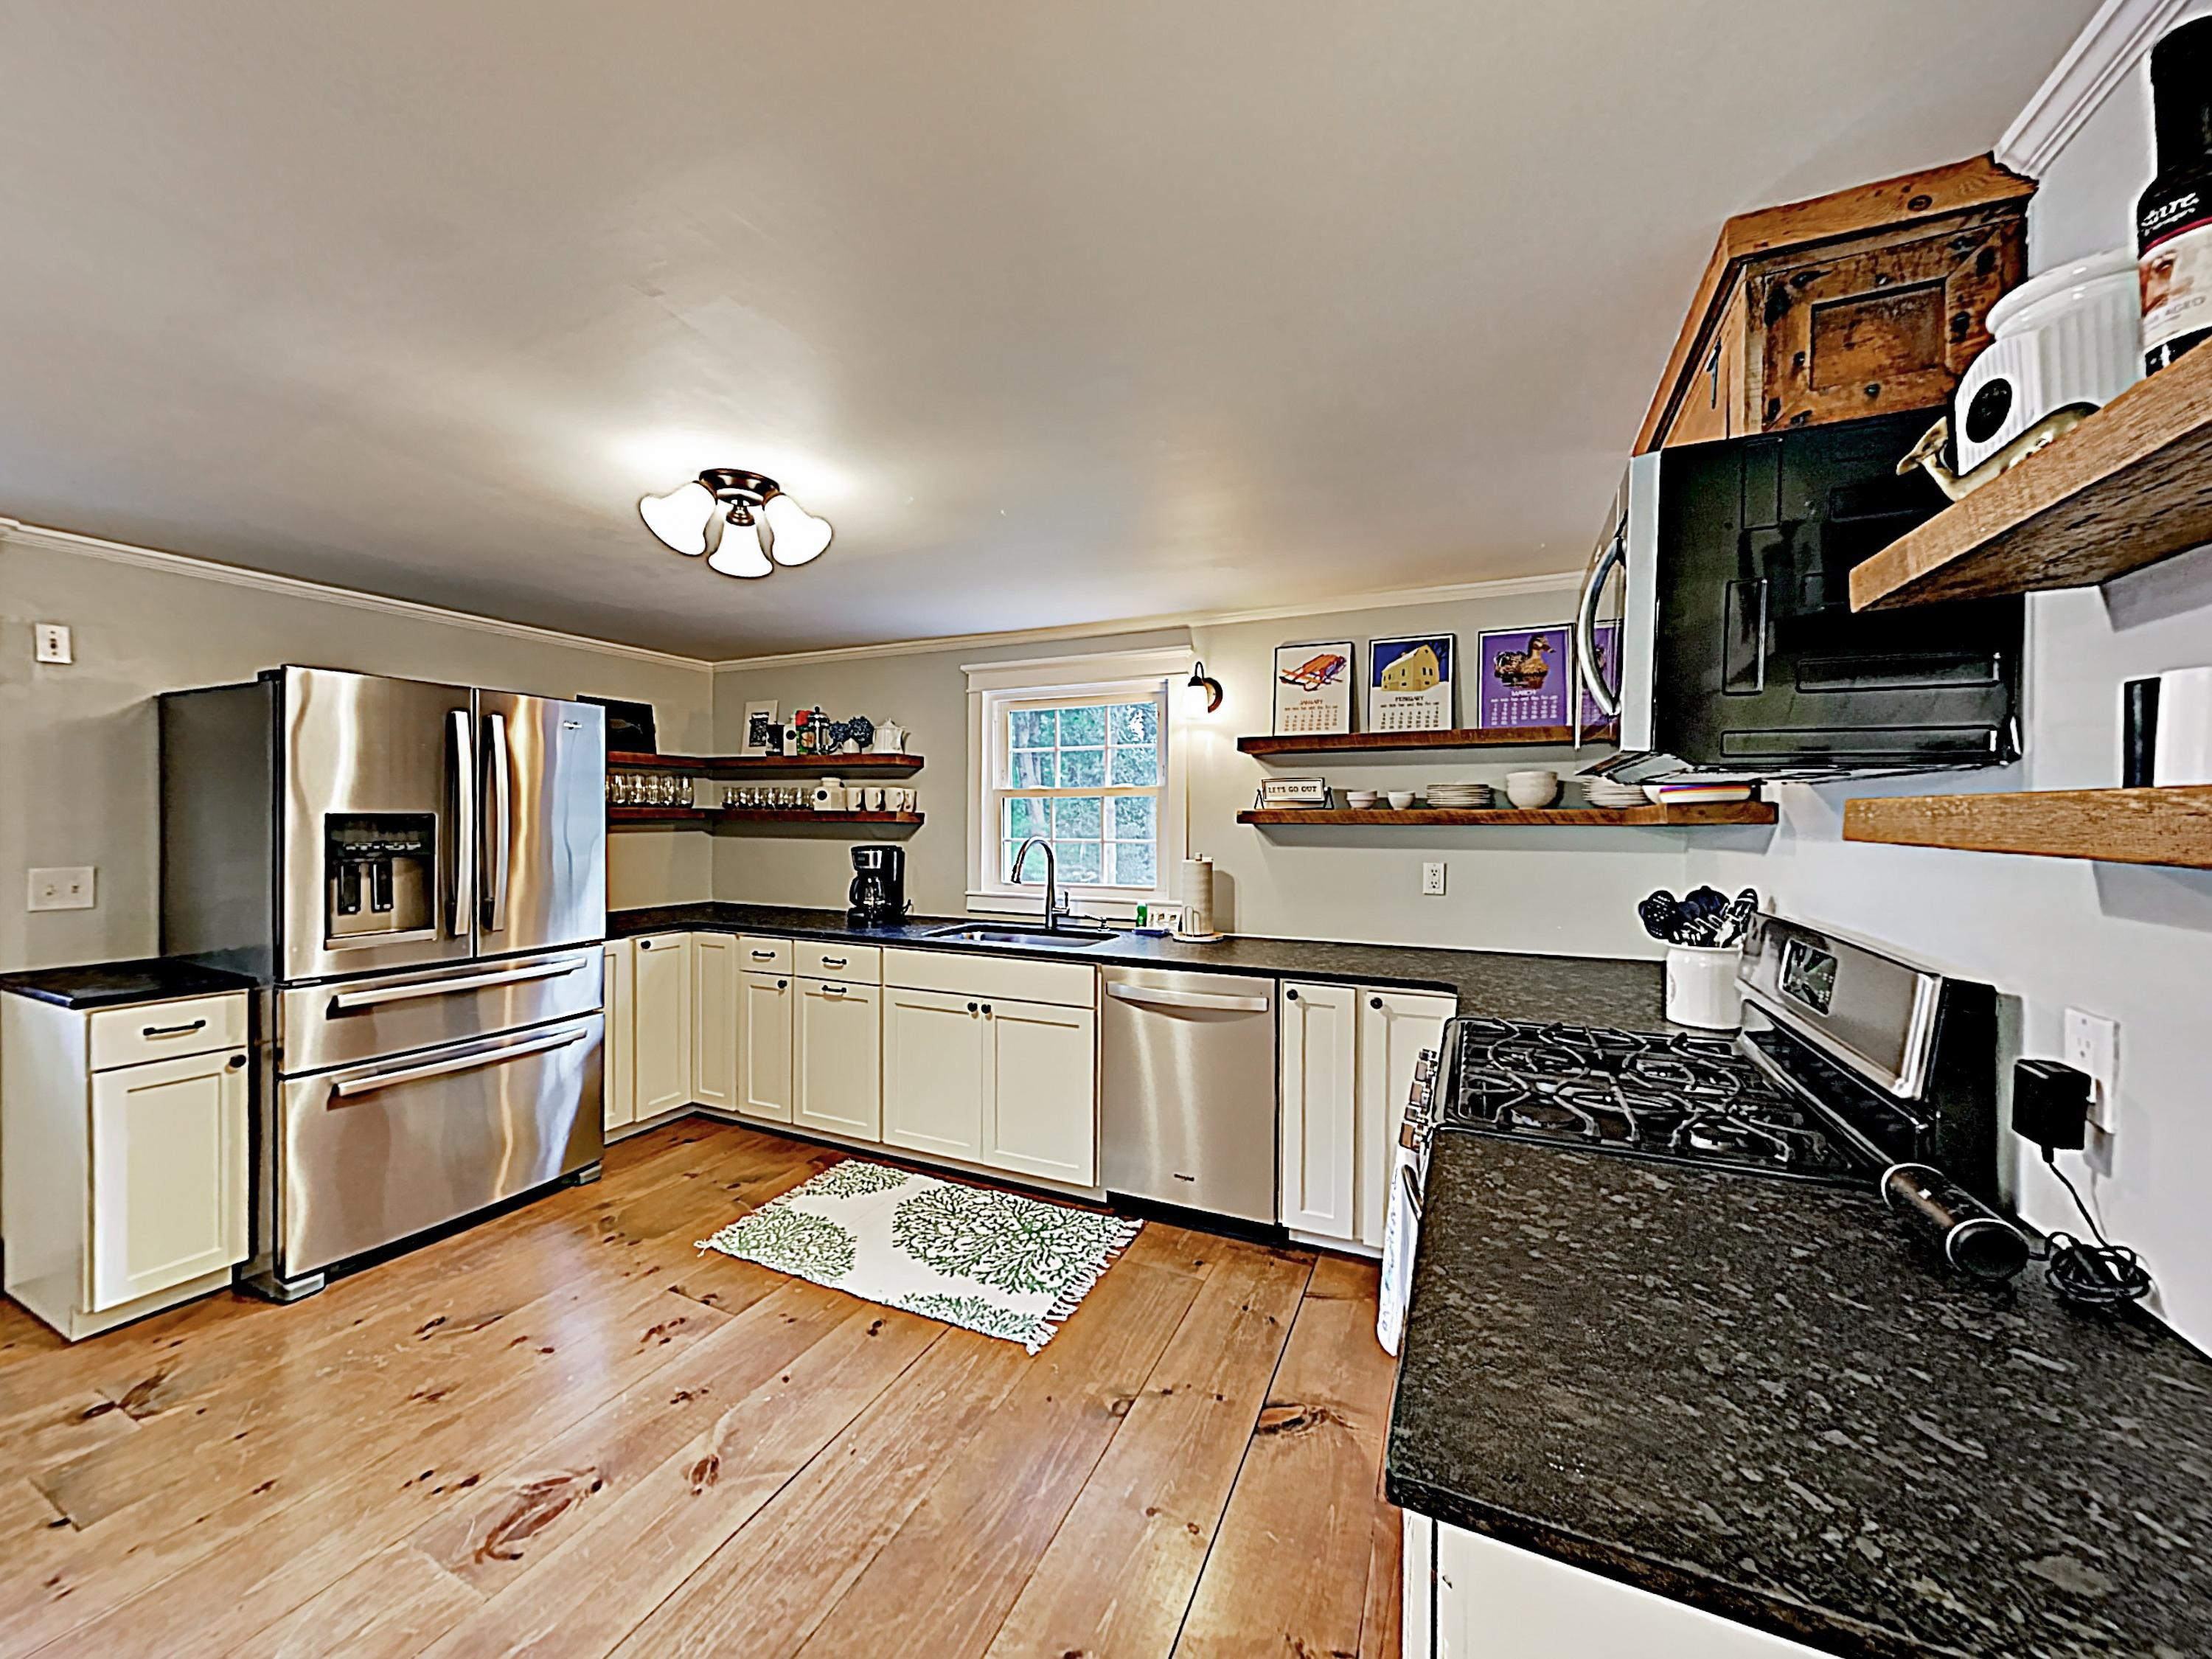 A spacious kitchen has plenty of counter space and a full suite of stainless steel appliances.